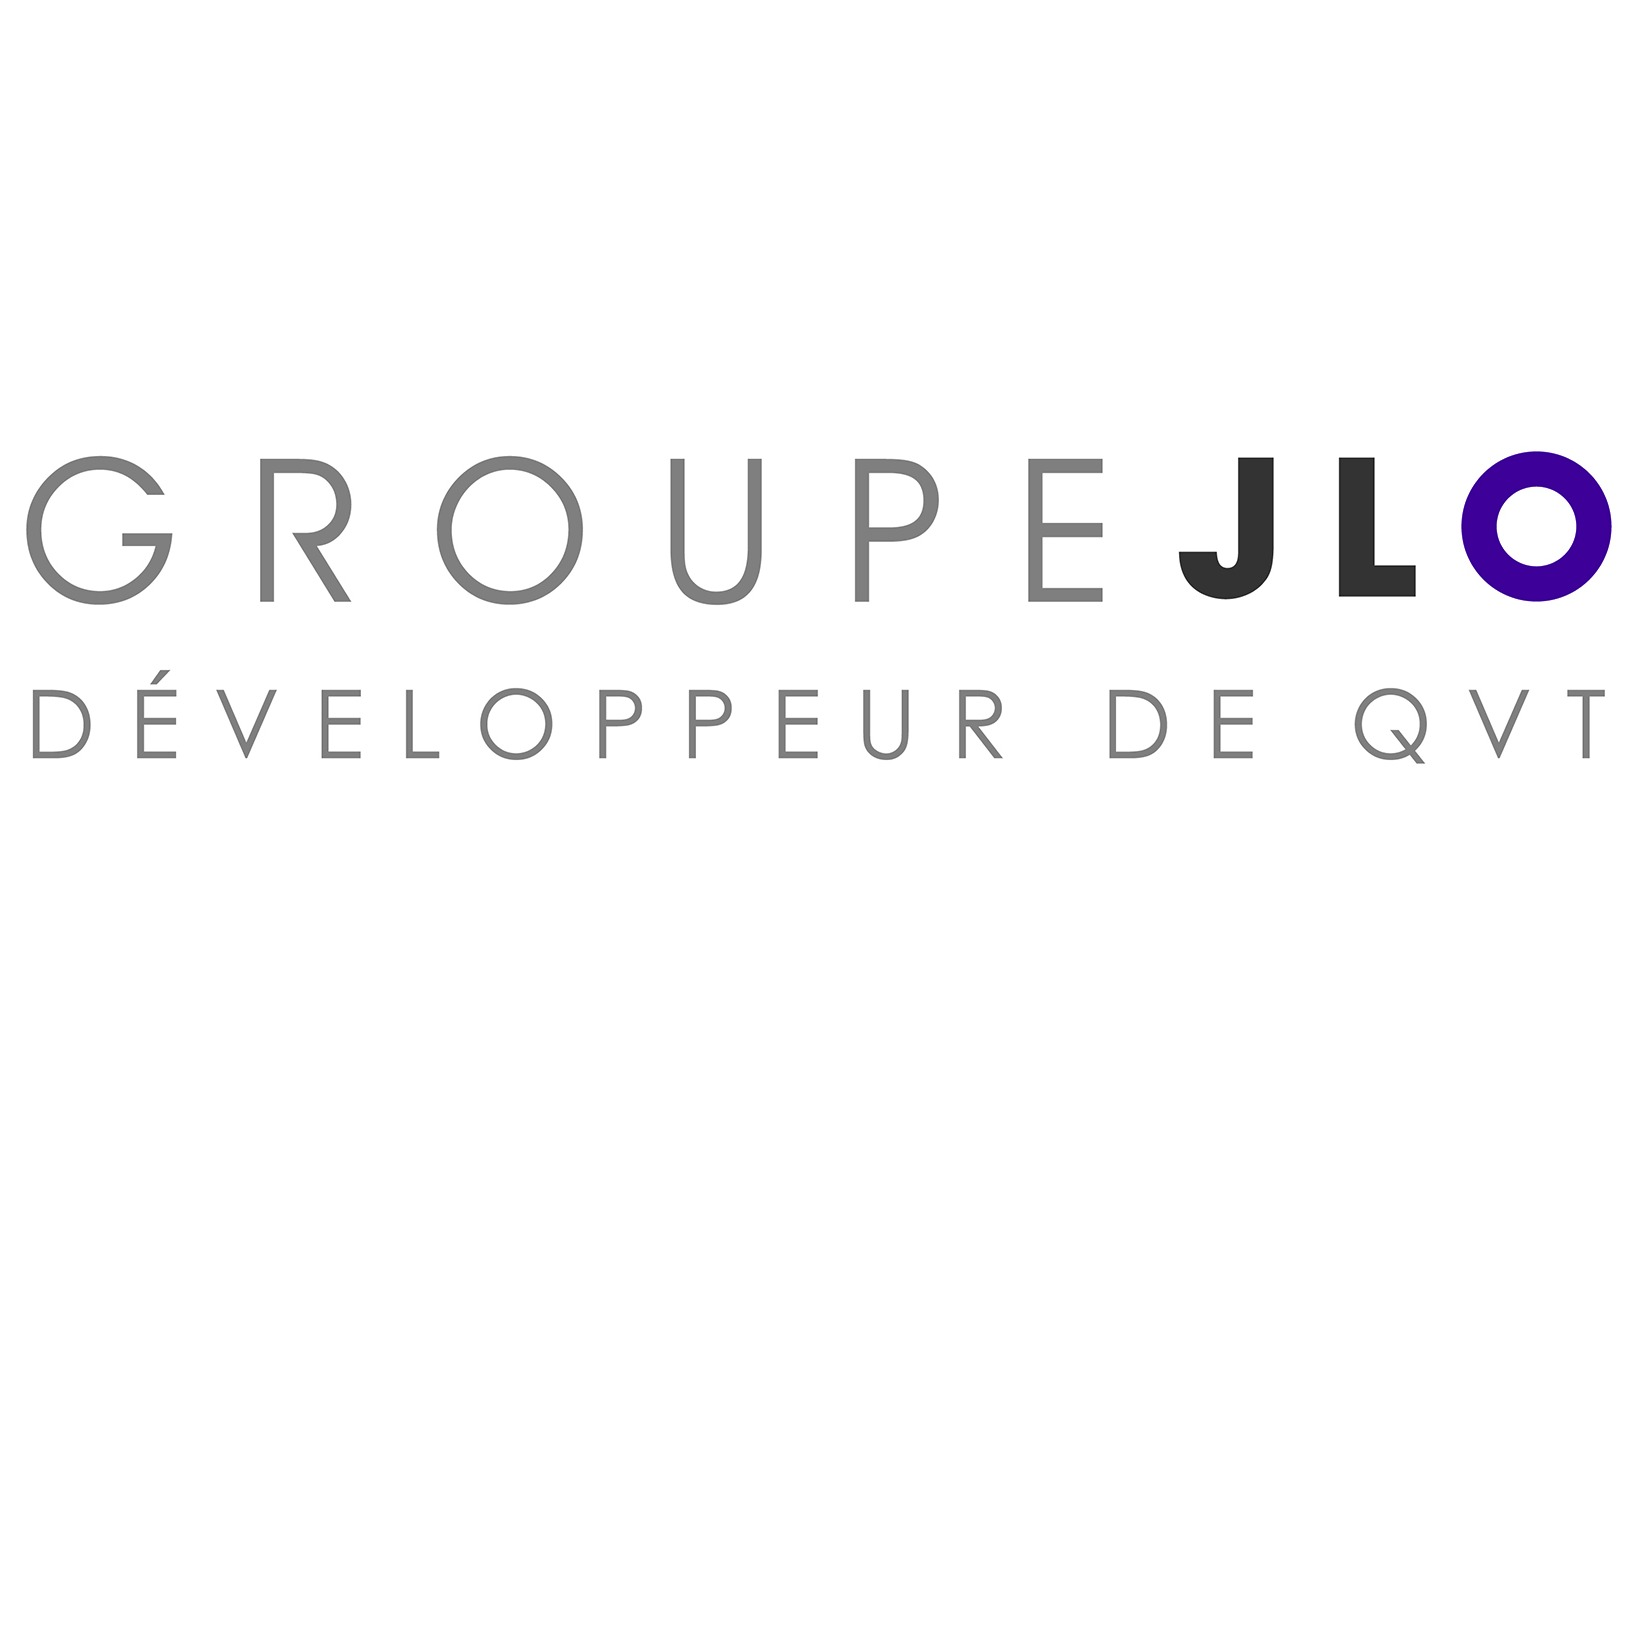 the Groupe JLO logo.